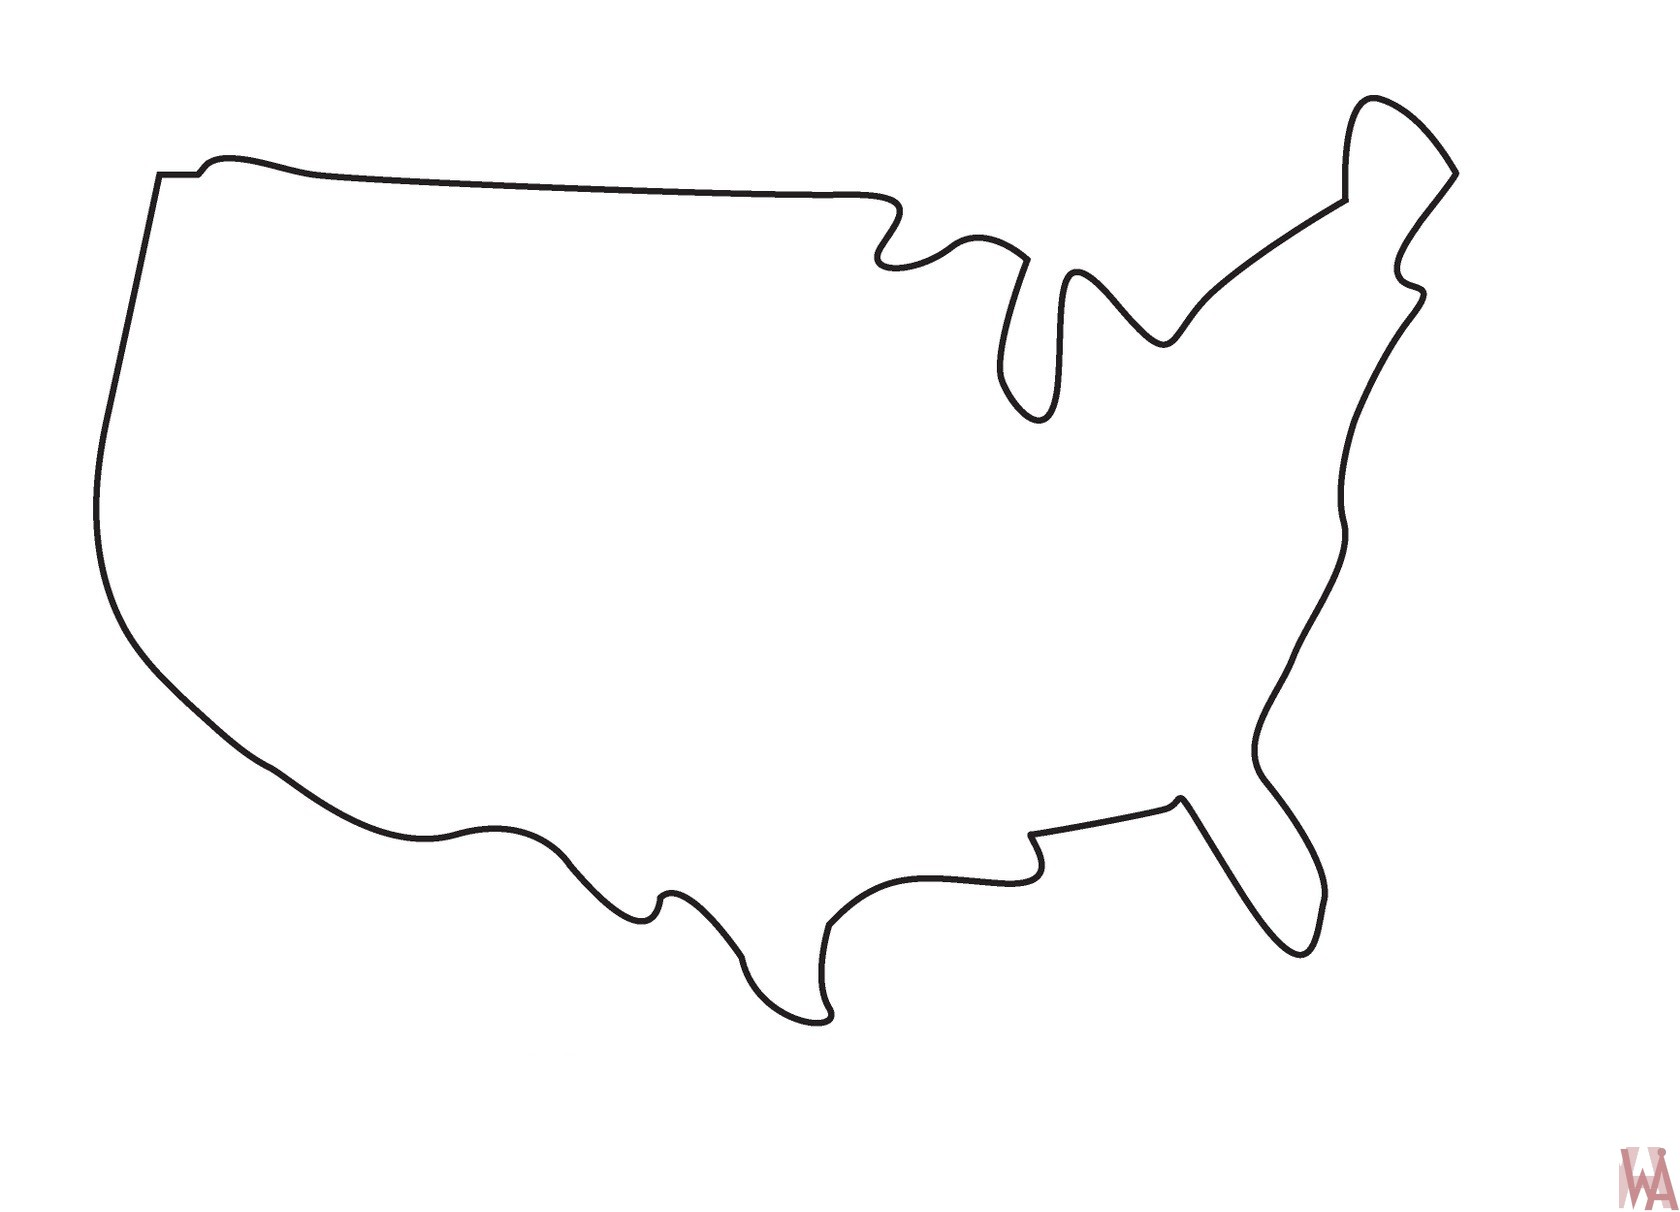 Blank Outline Map of the United States Country Border